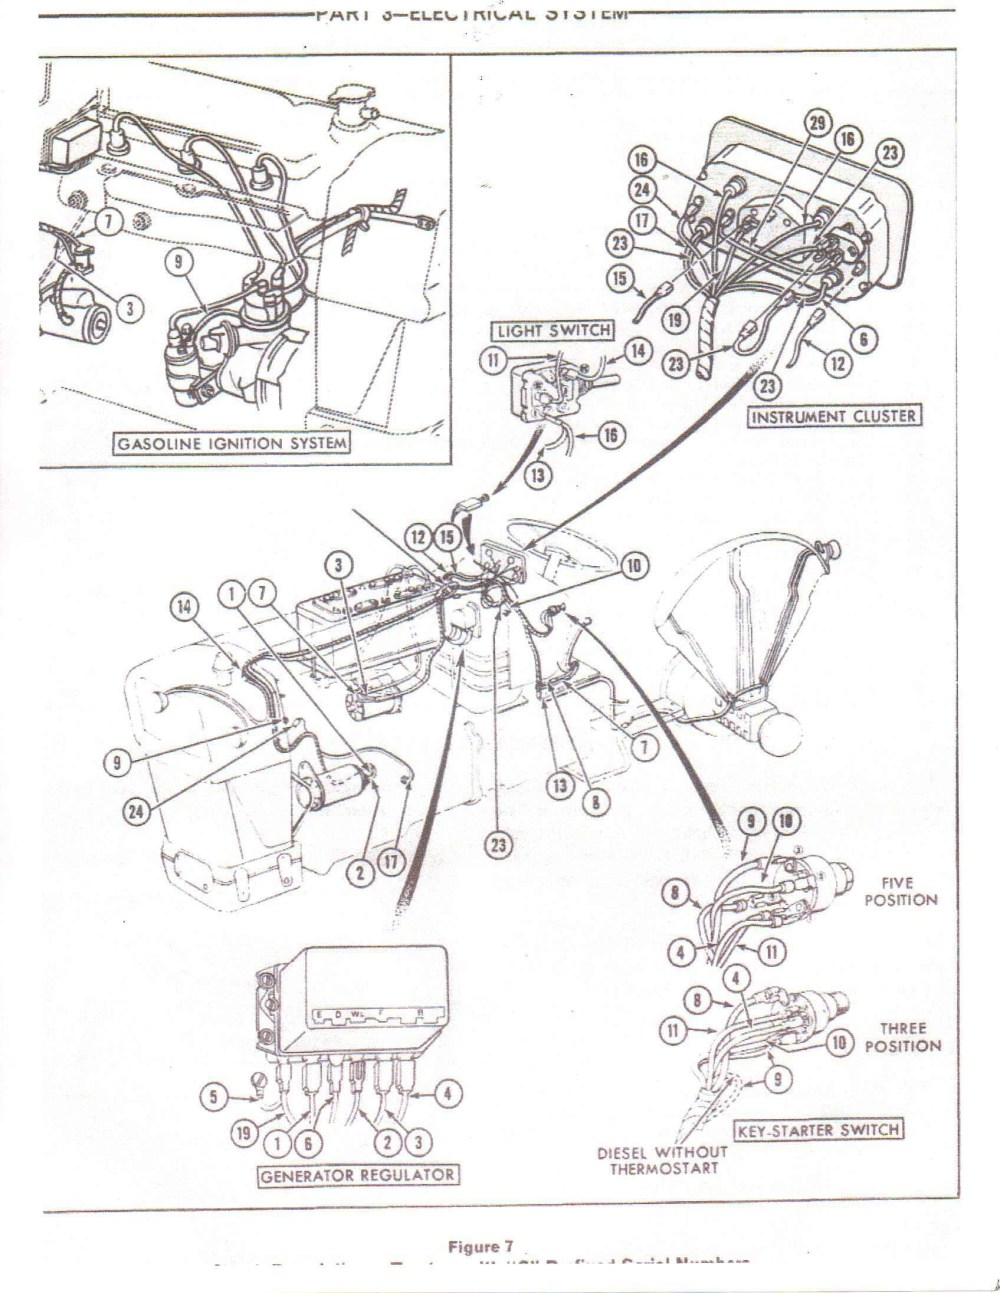 medium resolution of 5000 ford tractor electrical wiring diagram wiring diagram hub ford 5000 tractor loader diagram ford 3600 tractor parts diagram